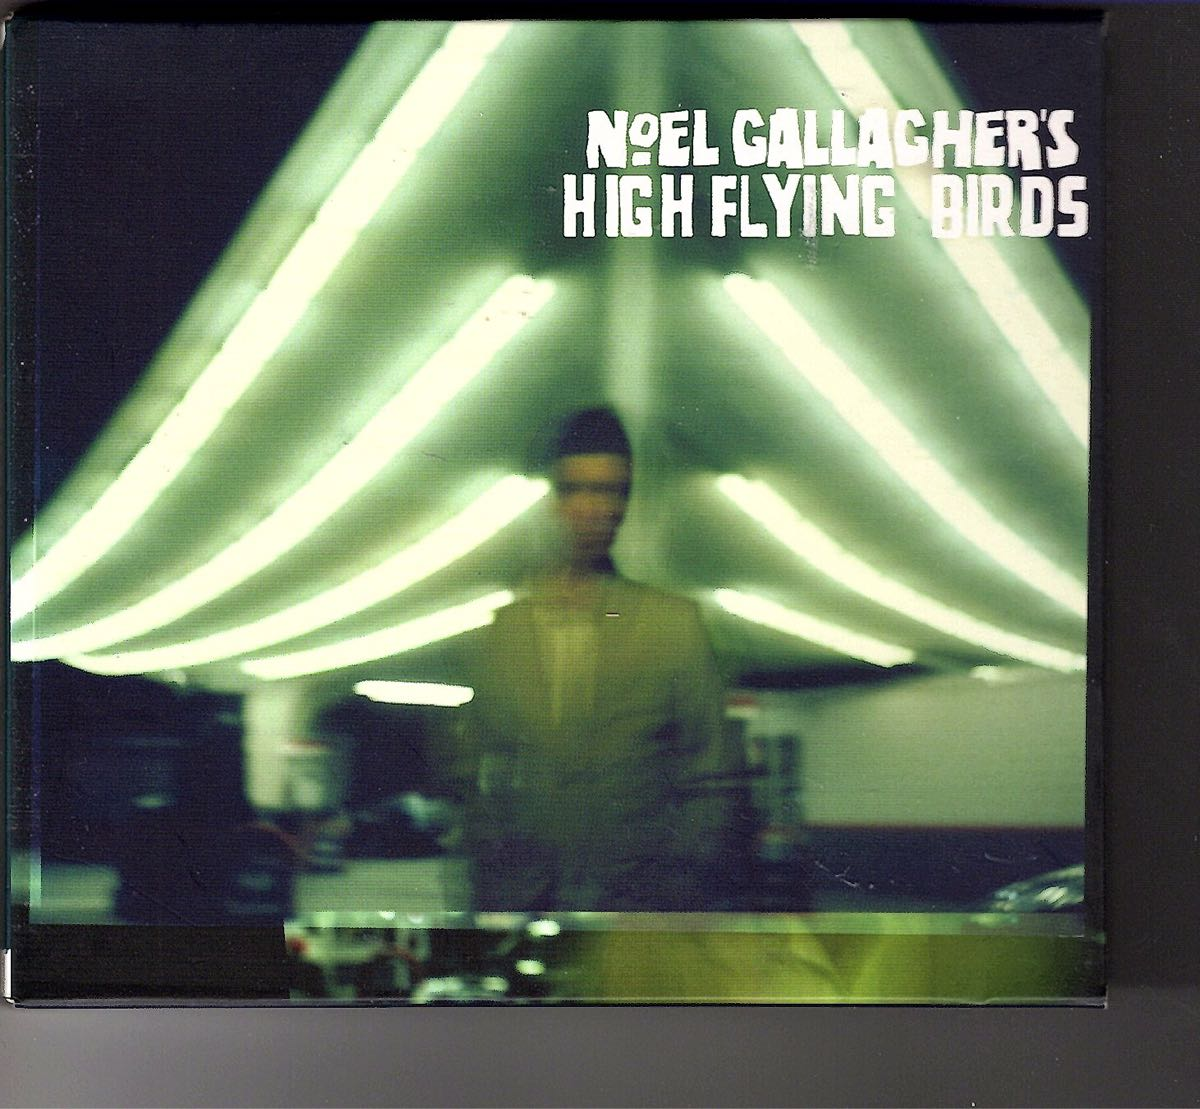 初回盤DVD付国内盤 Noel Gallagher's High Flying Birds [Noel Gallagher's High Flying Birds]